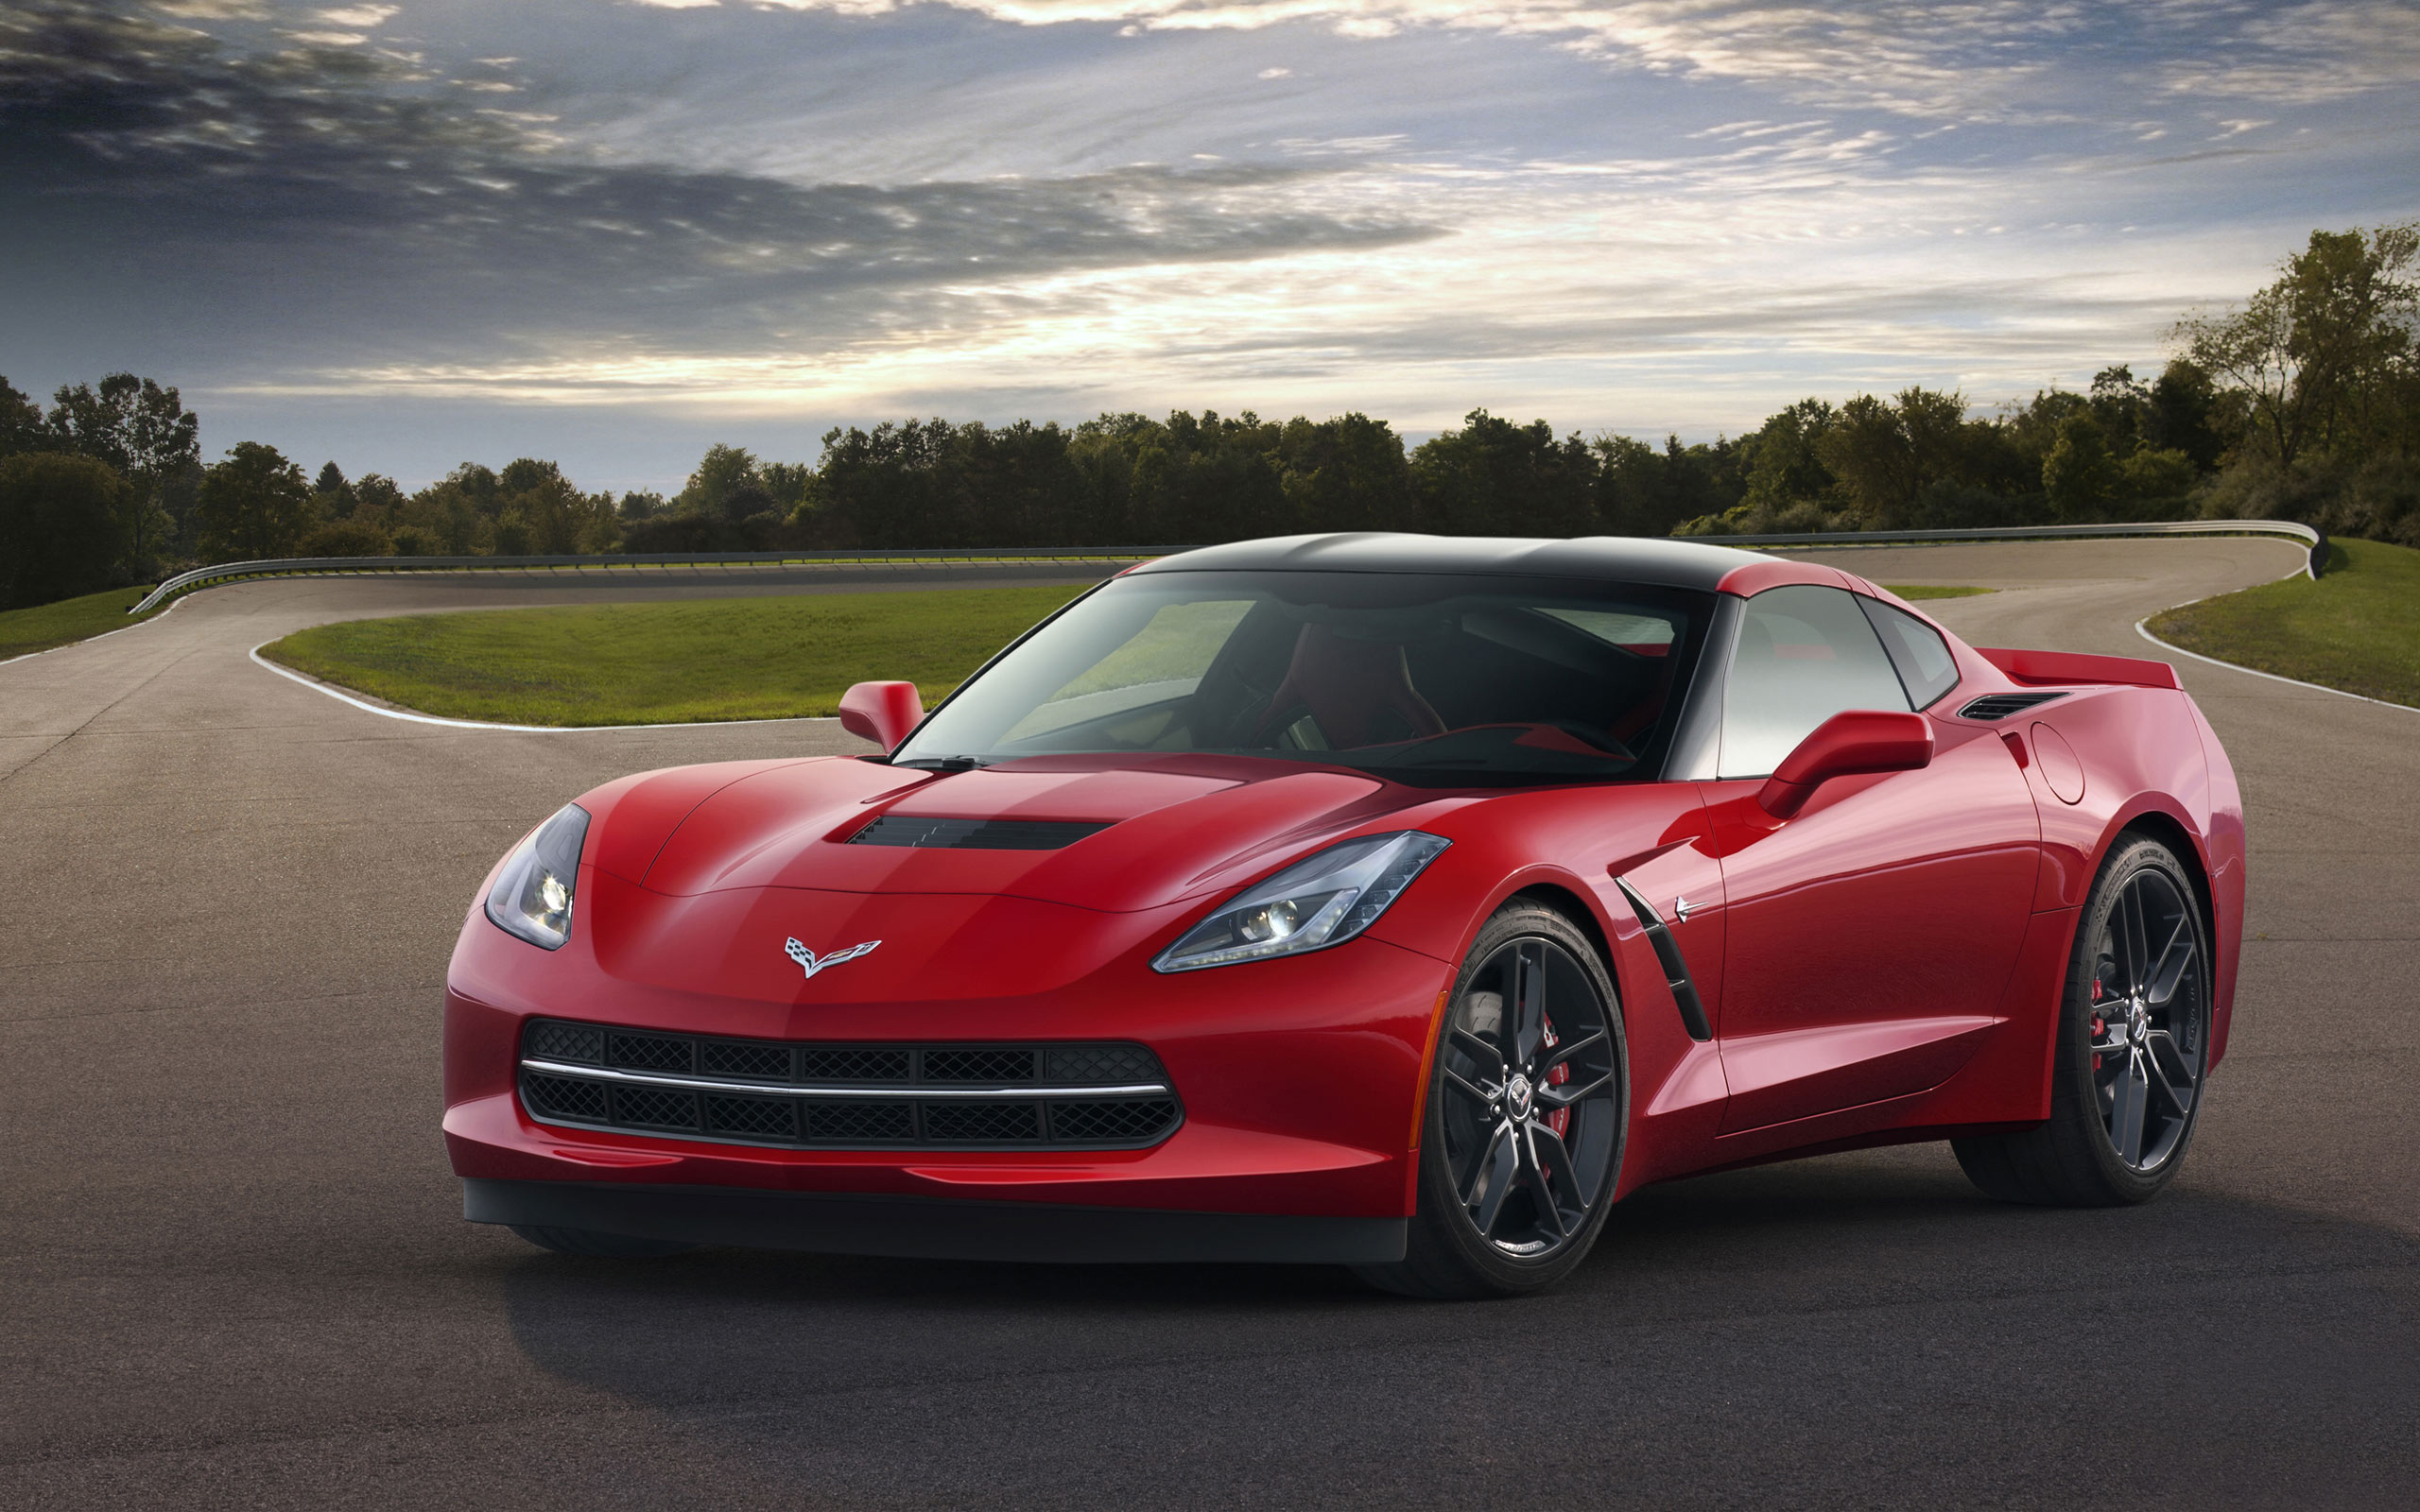 2014 Chevrolet Corvette C7 Stingray Wallpaper HD Car Wallpapers 2560x1600